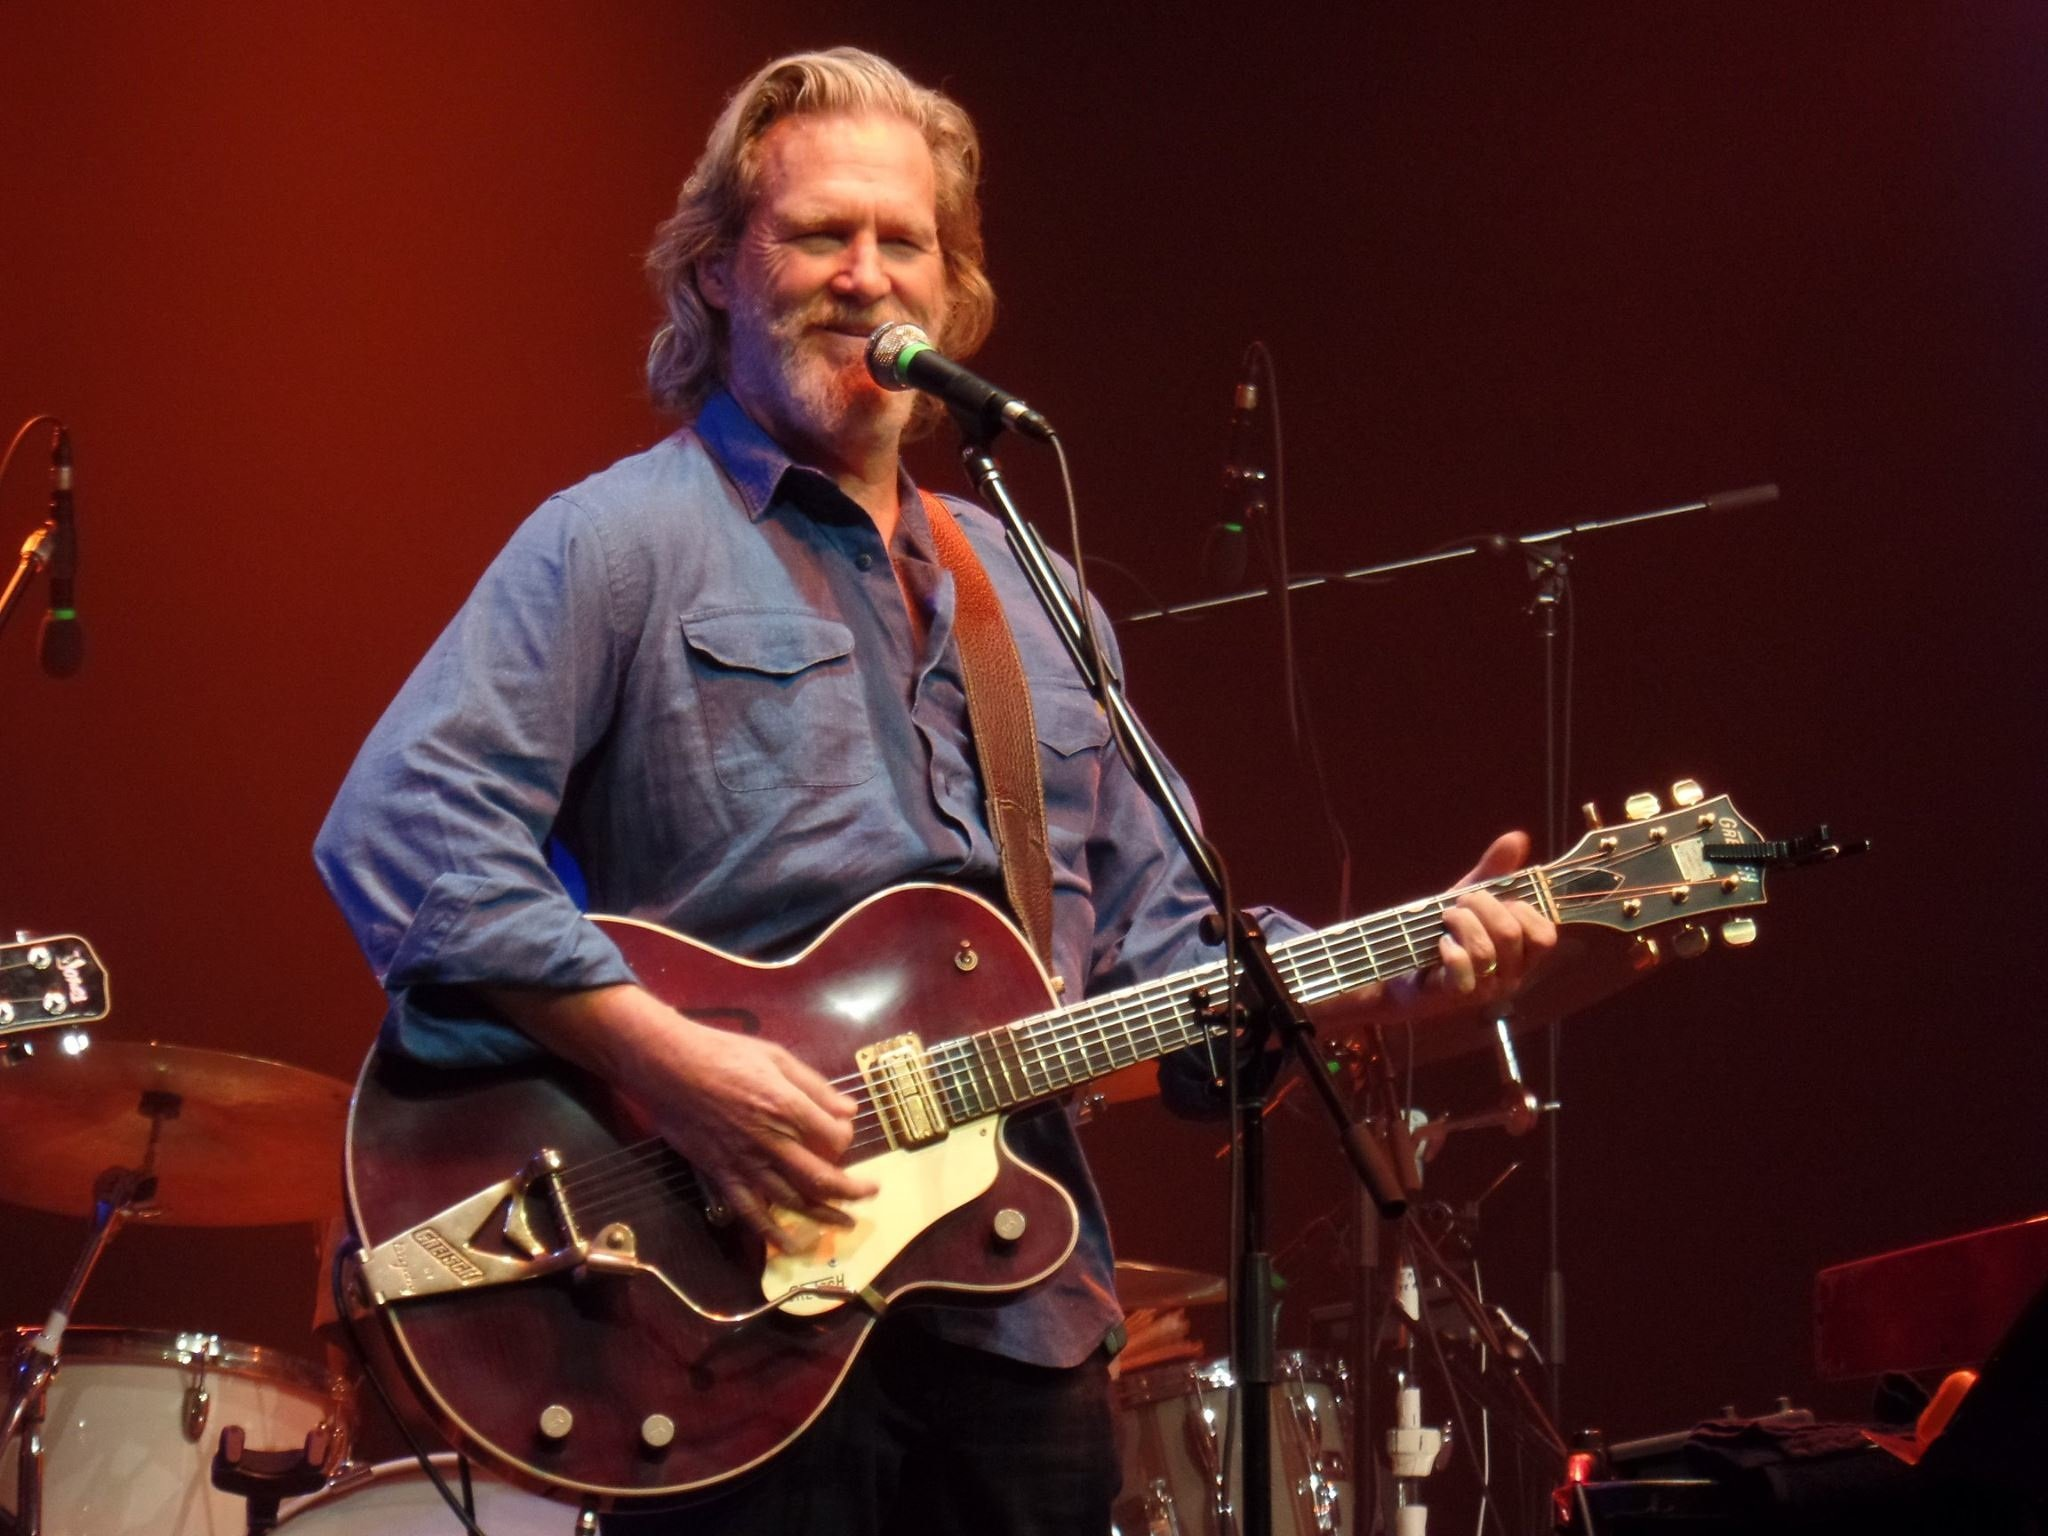 Photo courtesy Jeff Bridges (from another live performance).